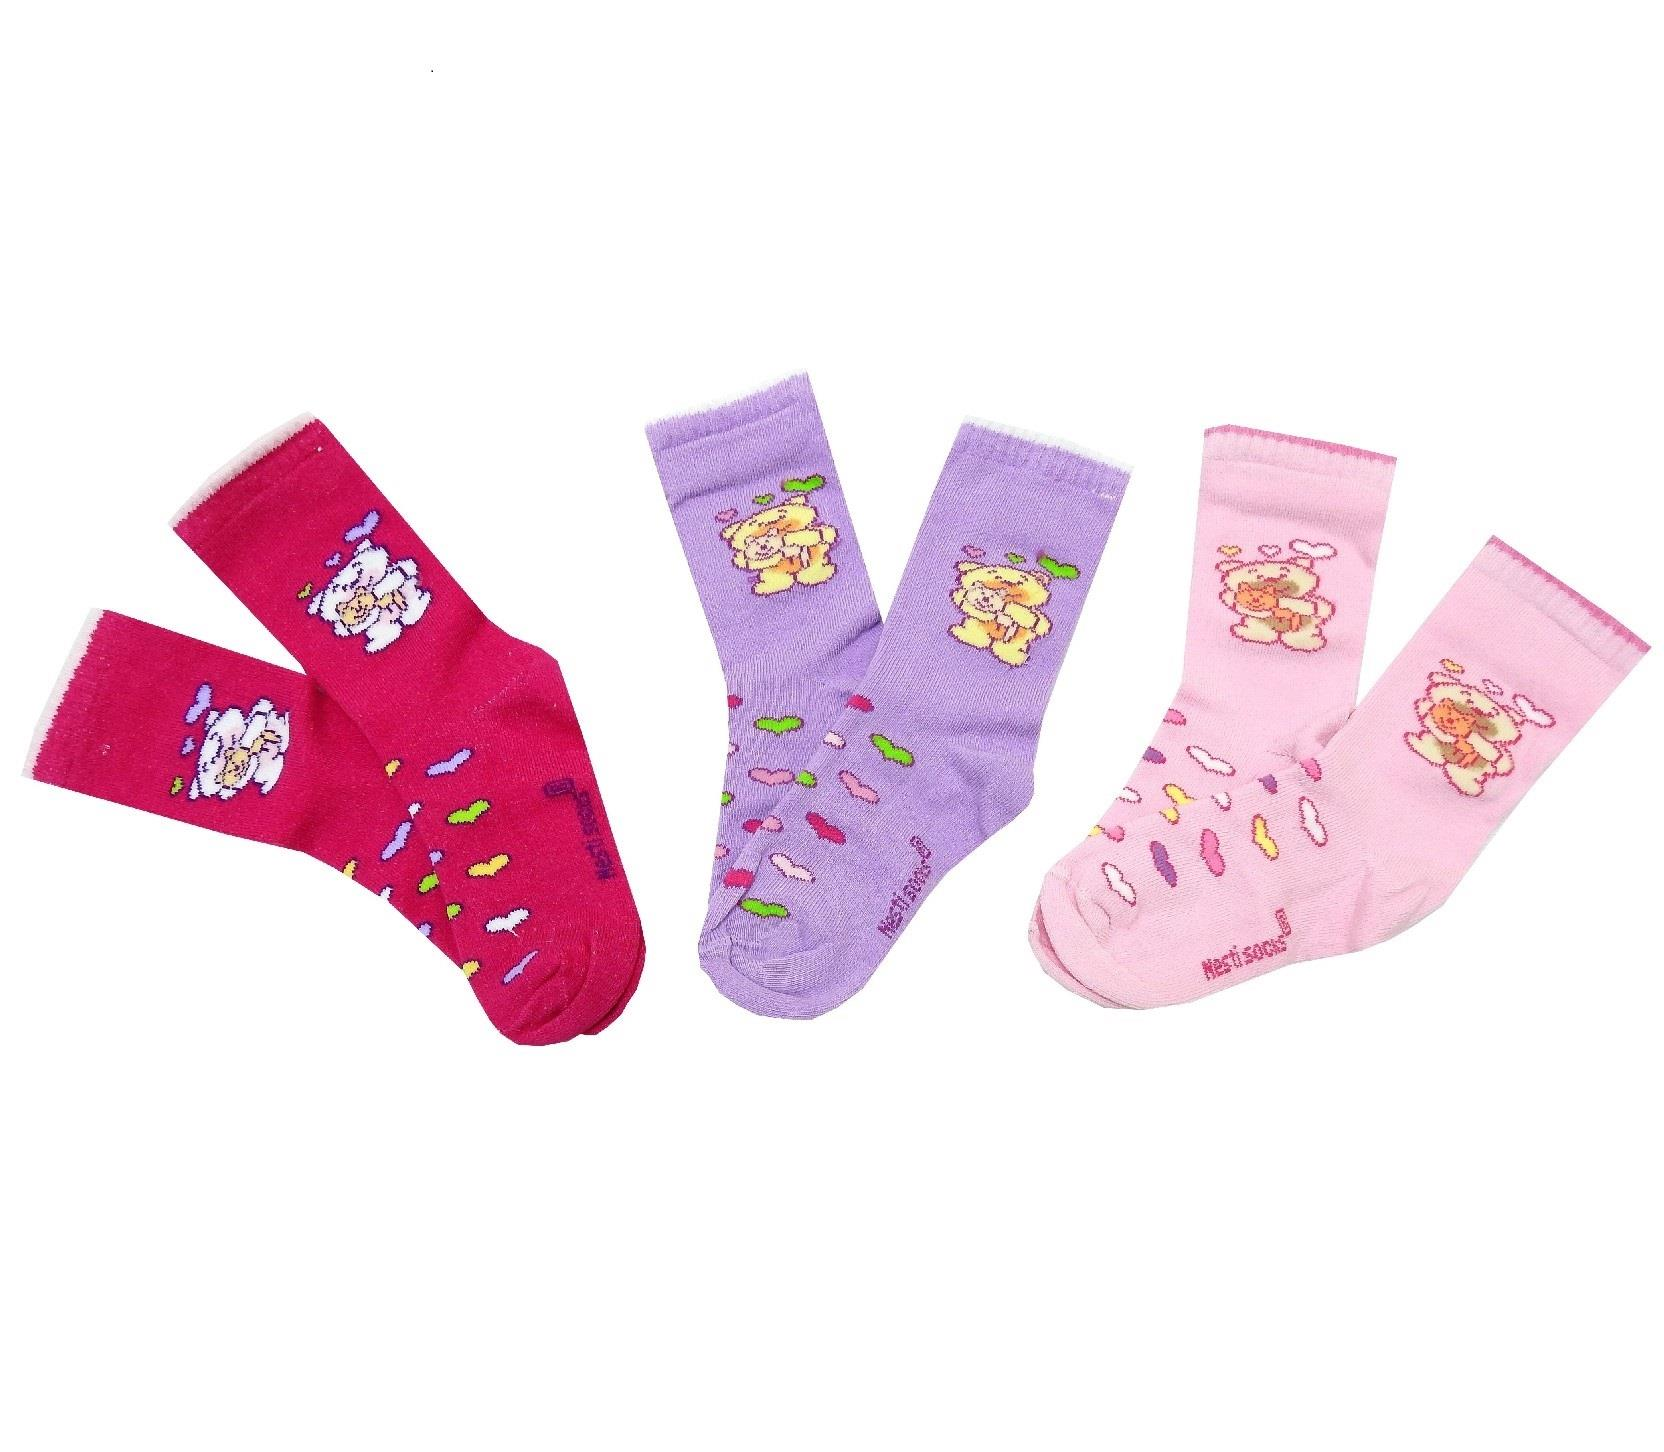 WHOLESALE SOCKS FOR KIDS 12 PIECES IN PACKAGE